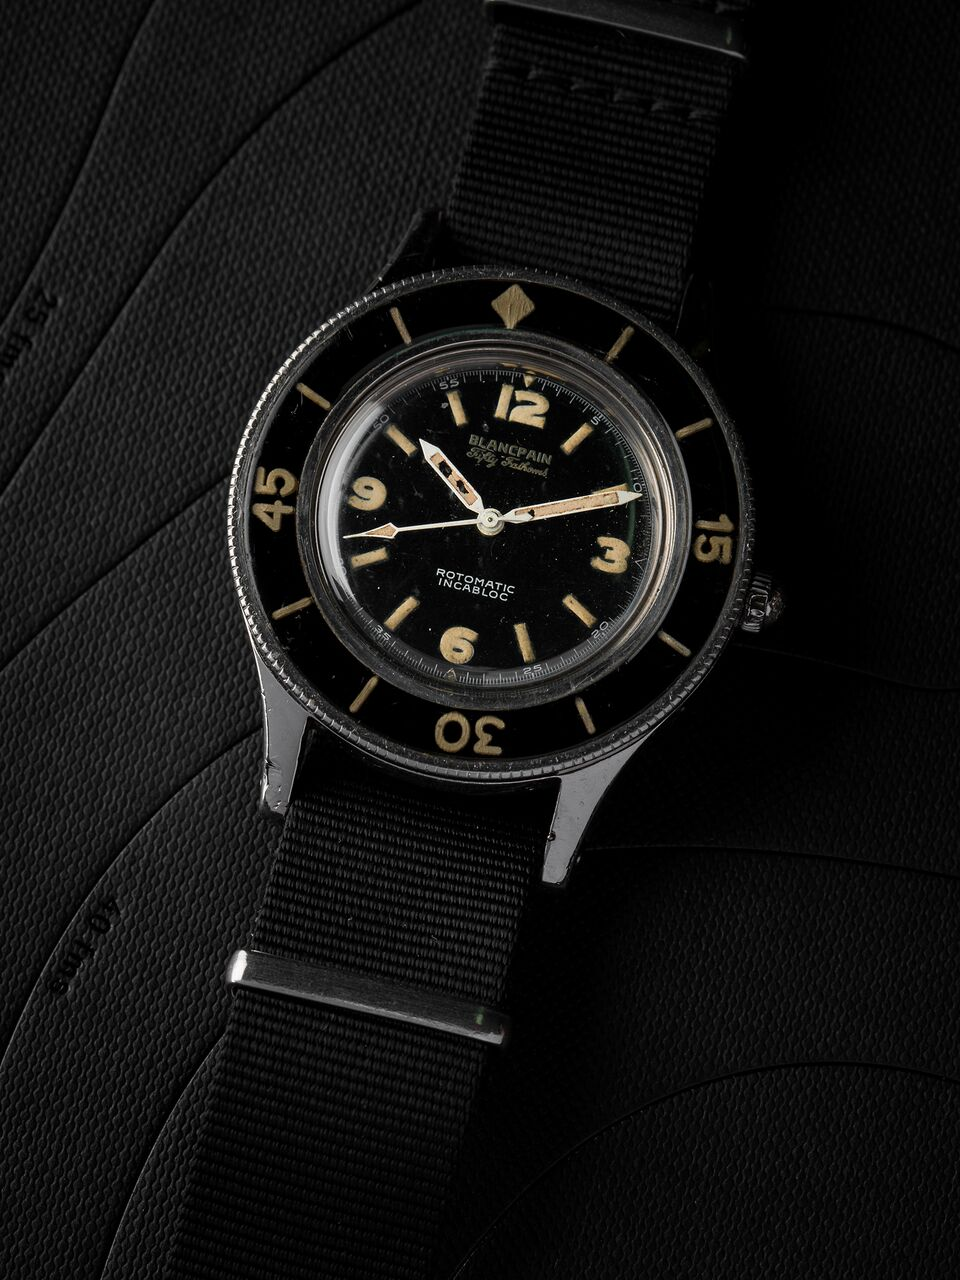 Blancpain's Fifty Fathoms was based on many of the criteria that later would become part of the ISO 6425